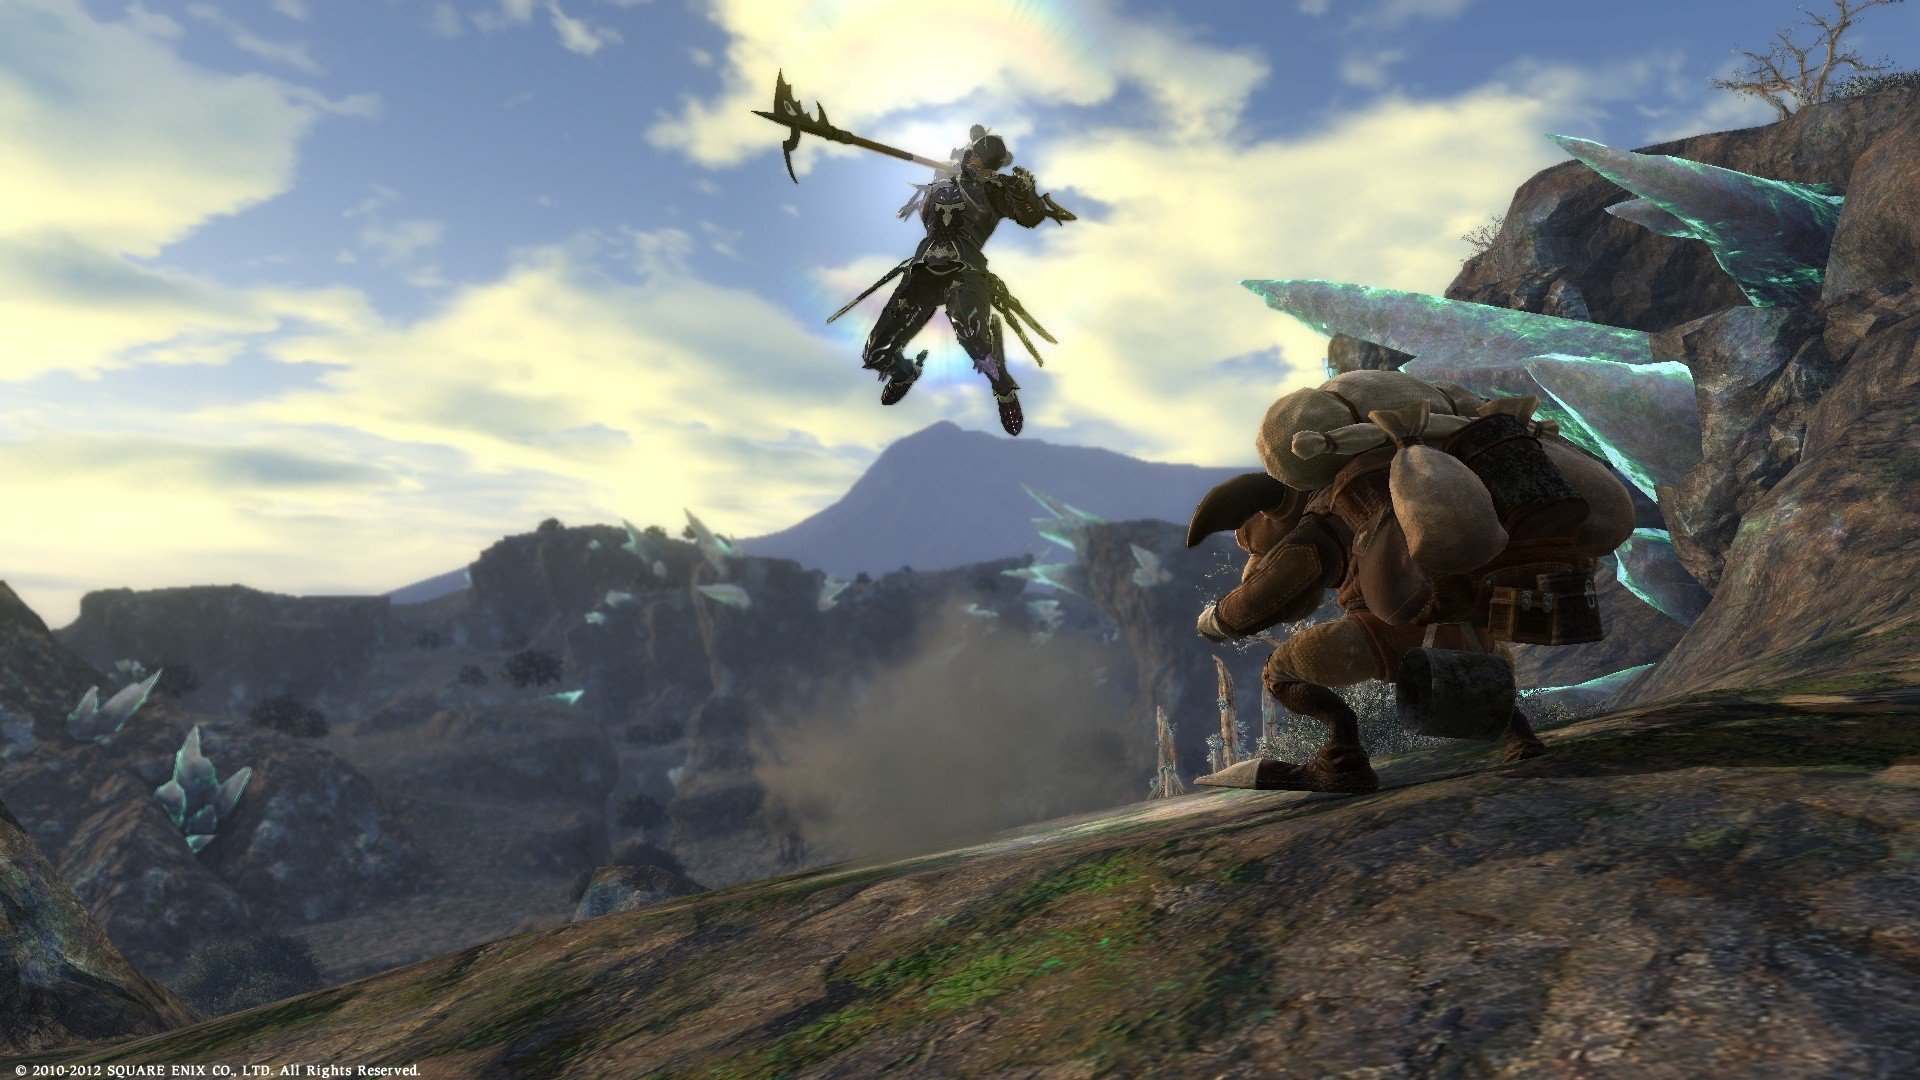 Final Fantasy XIV: A Realm Reborn - Dragoon in mid-jump